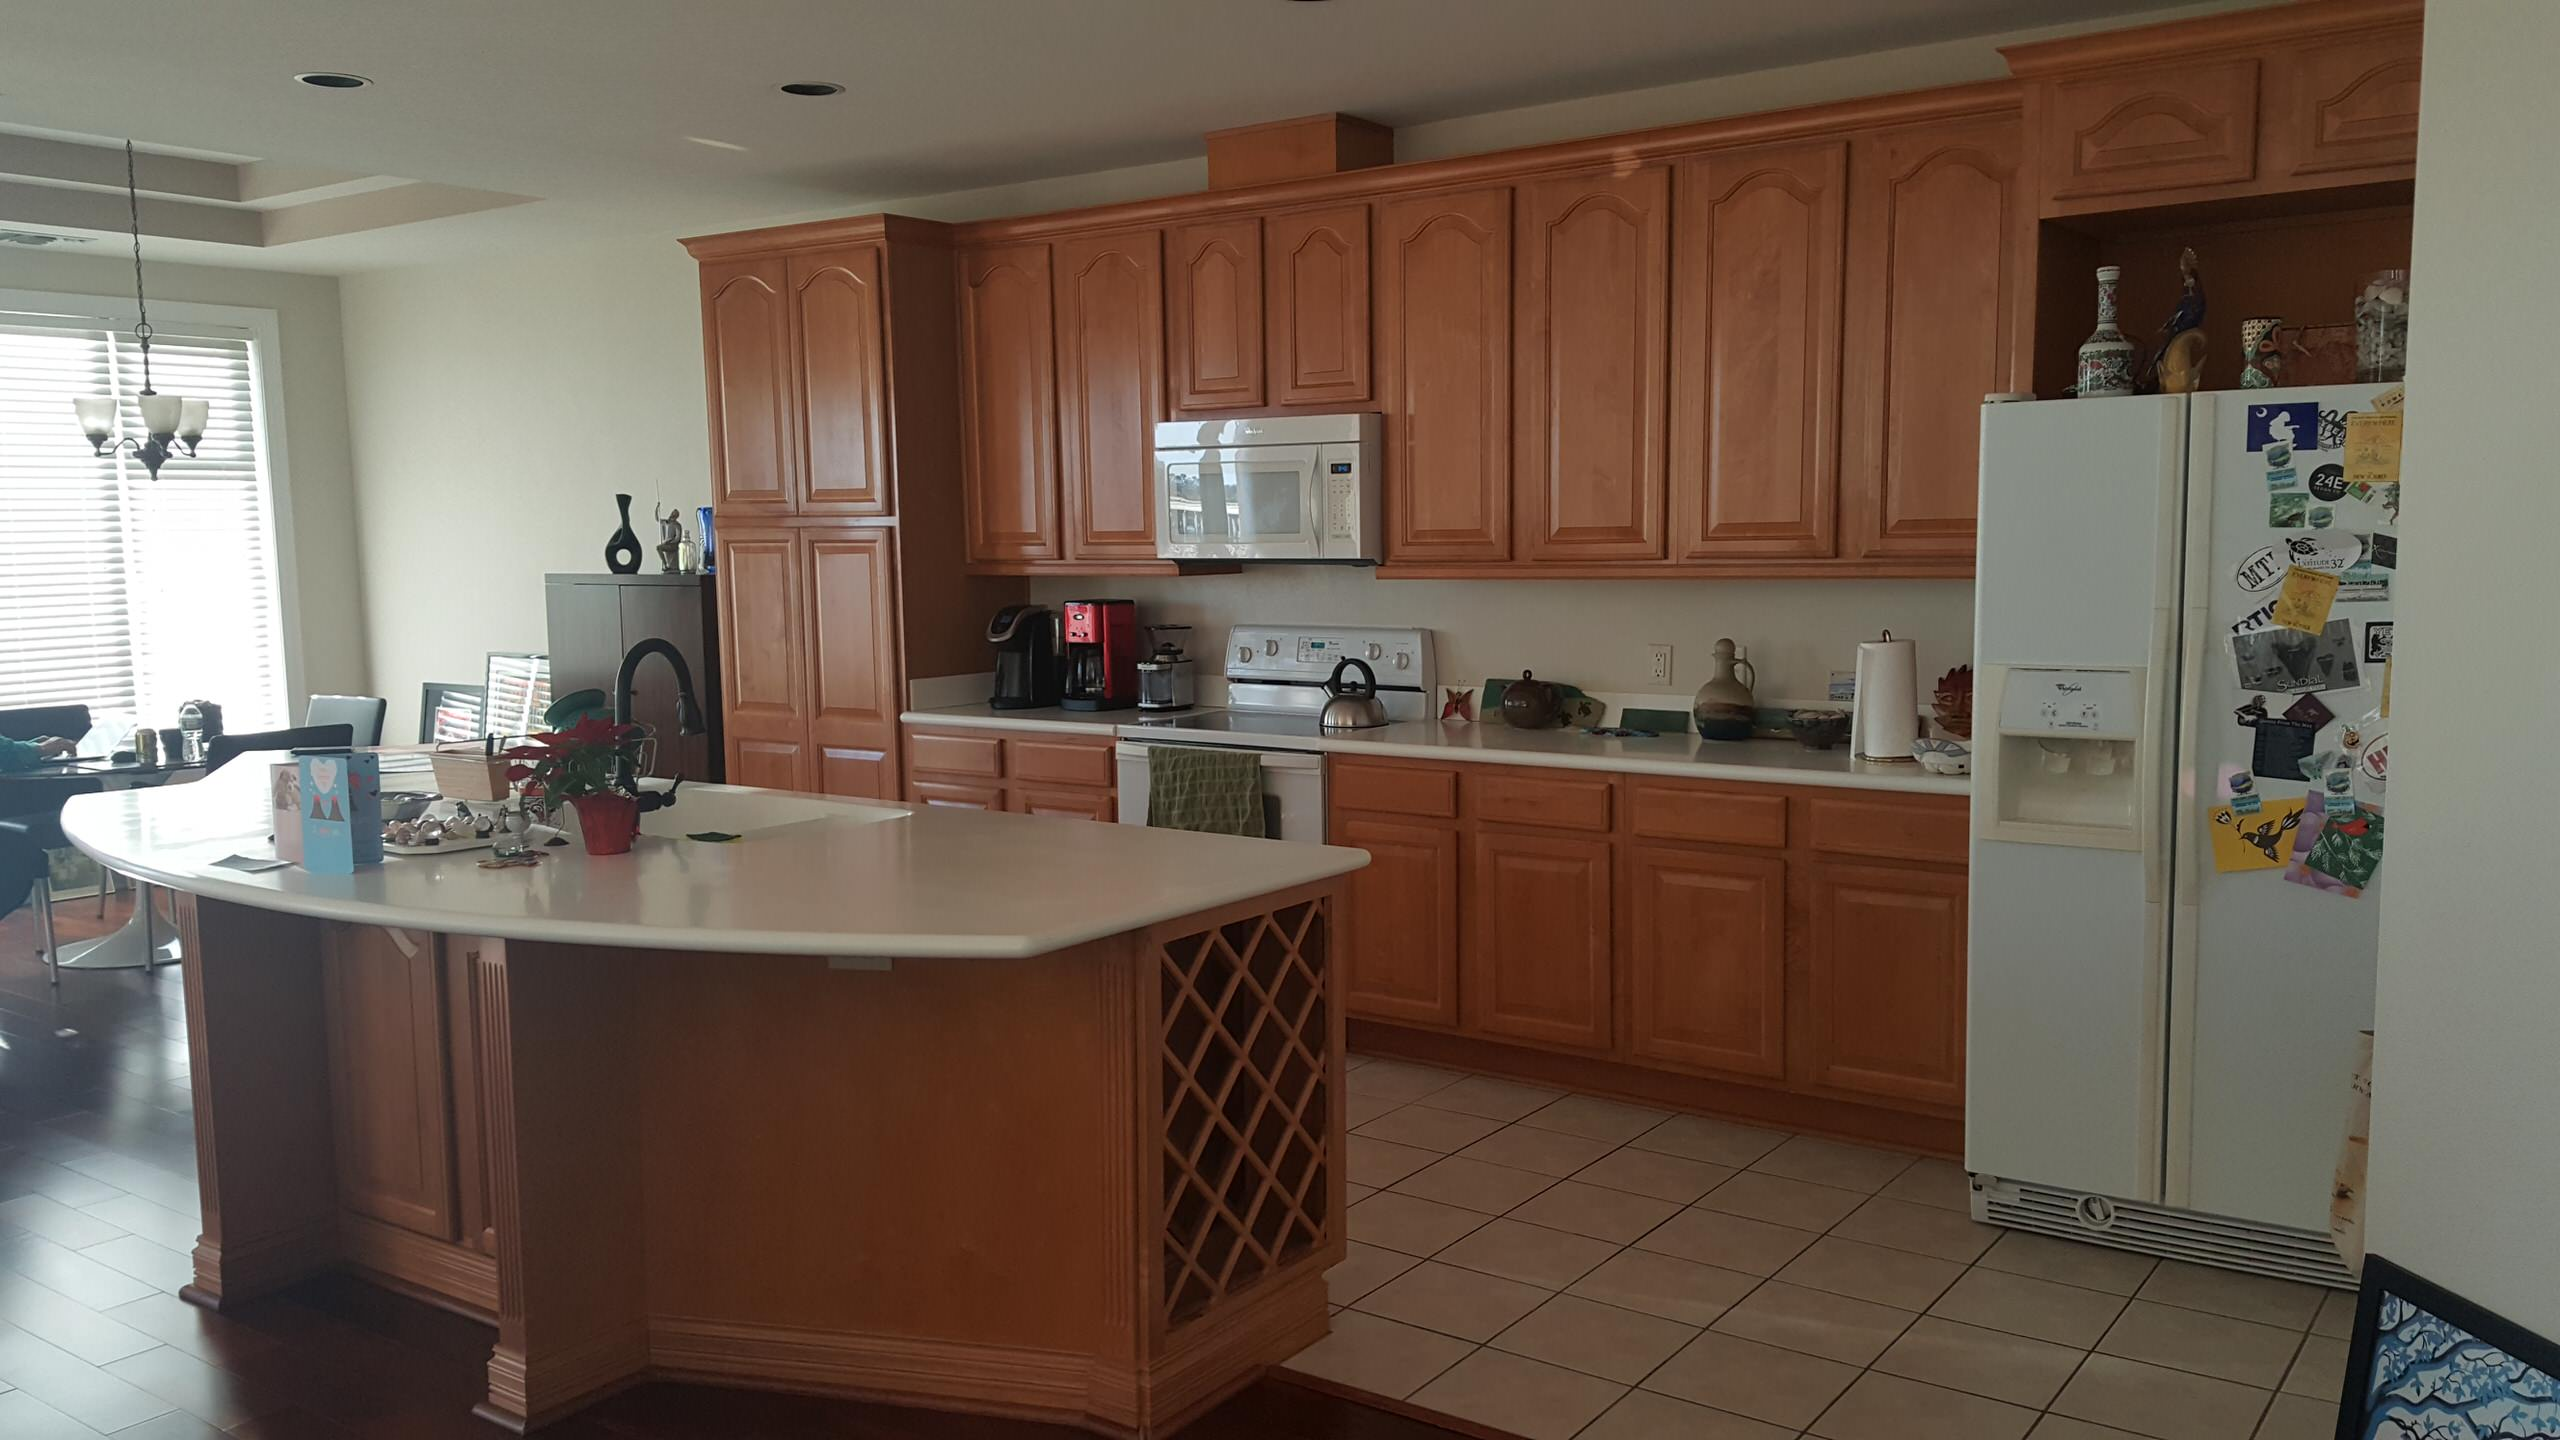 Original kitchen built in the early 2000's